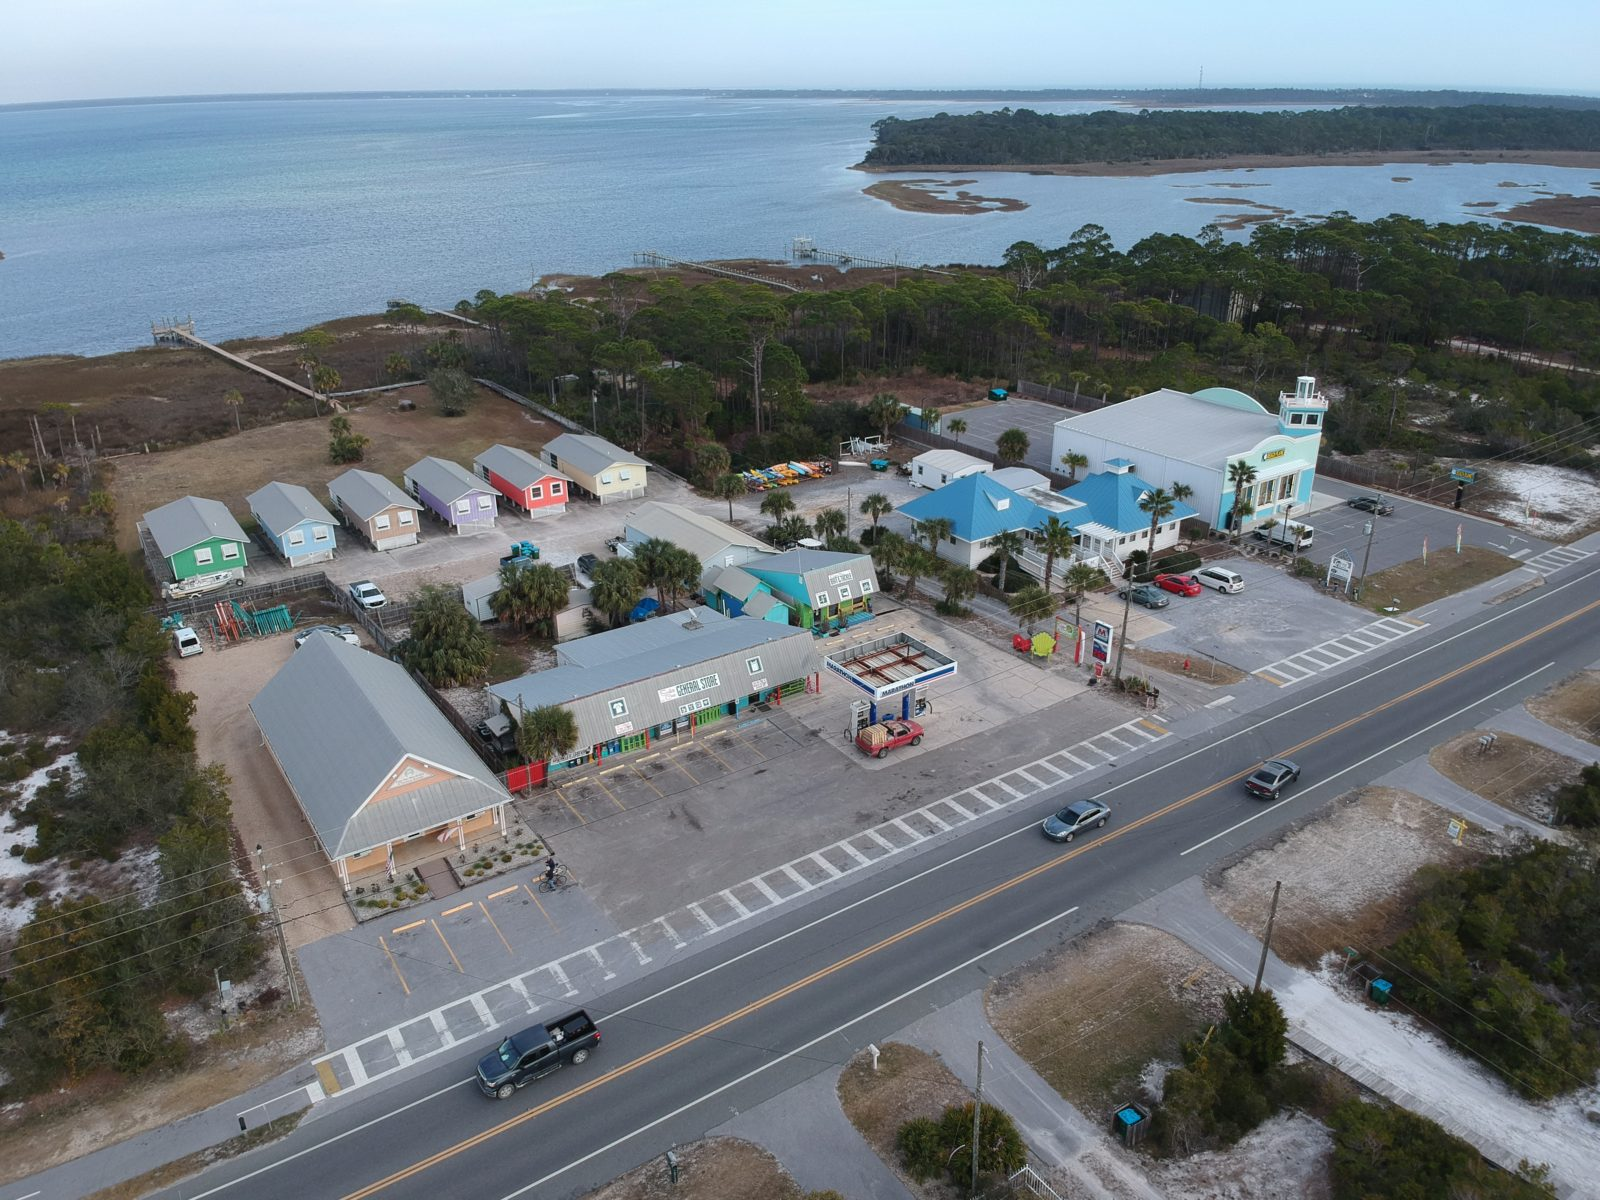 Rental Villas behind Scallop Cove on Cape San Blas